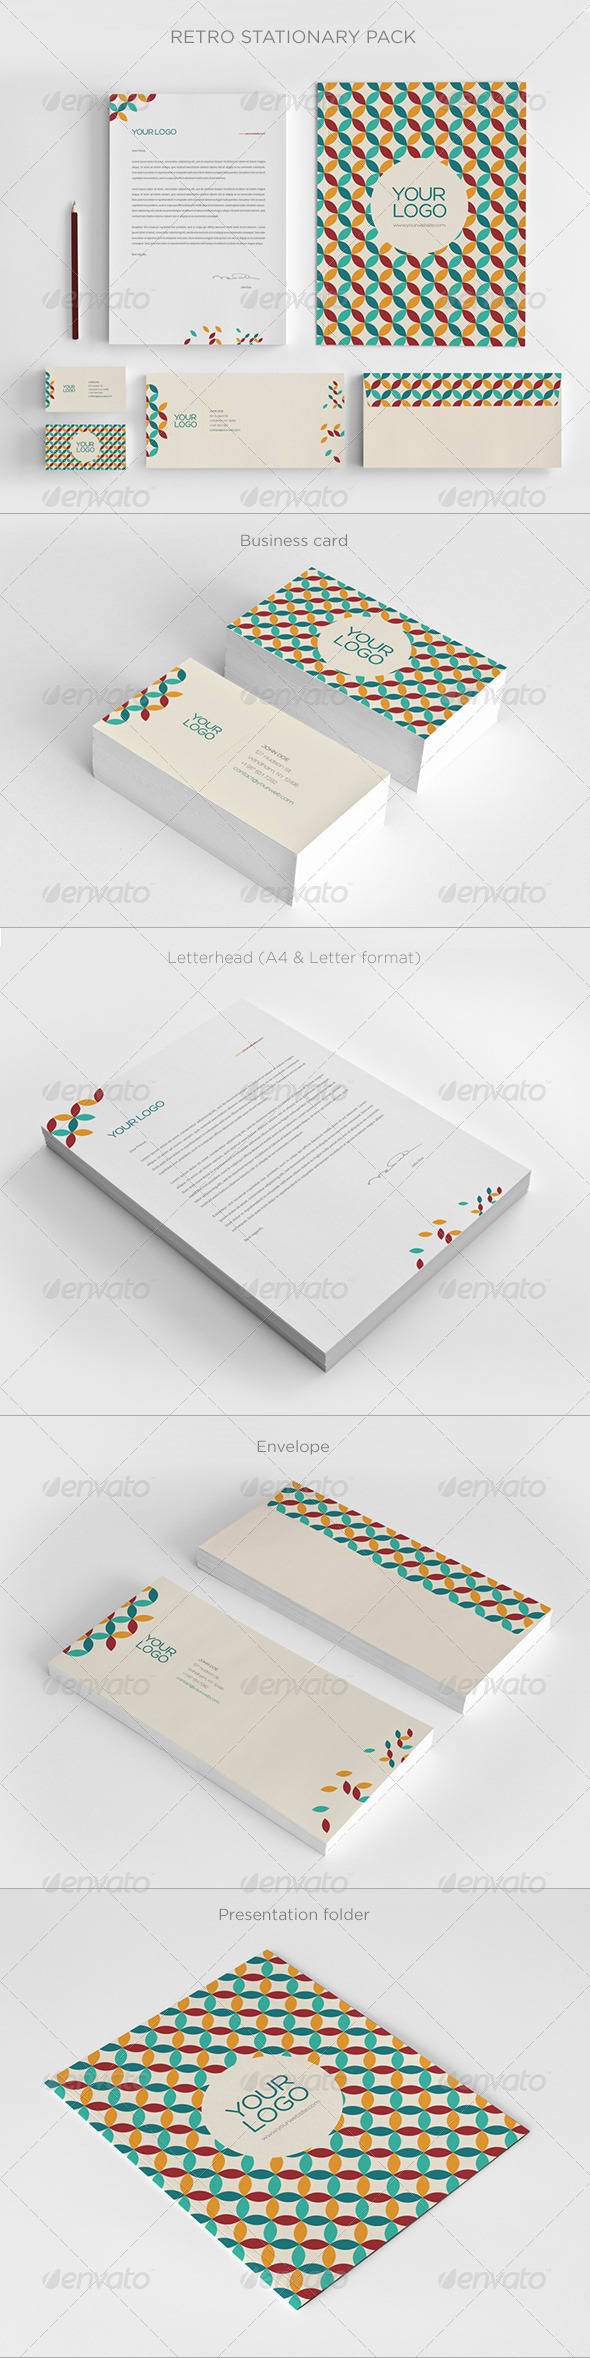 GraphicRiver Retro Stationary 6735752